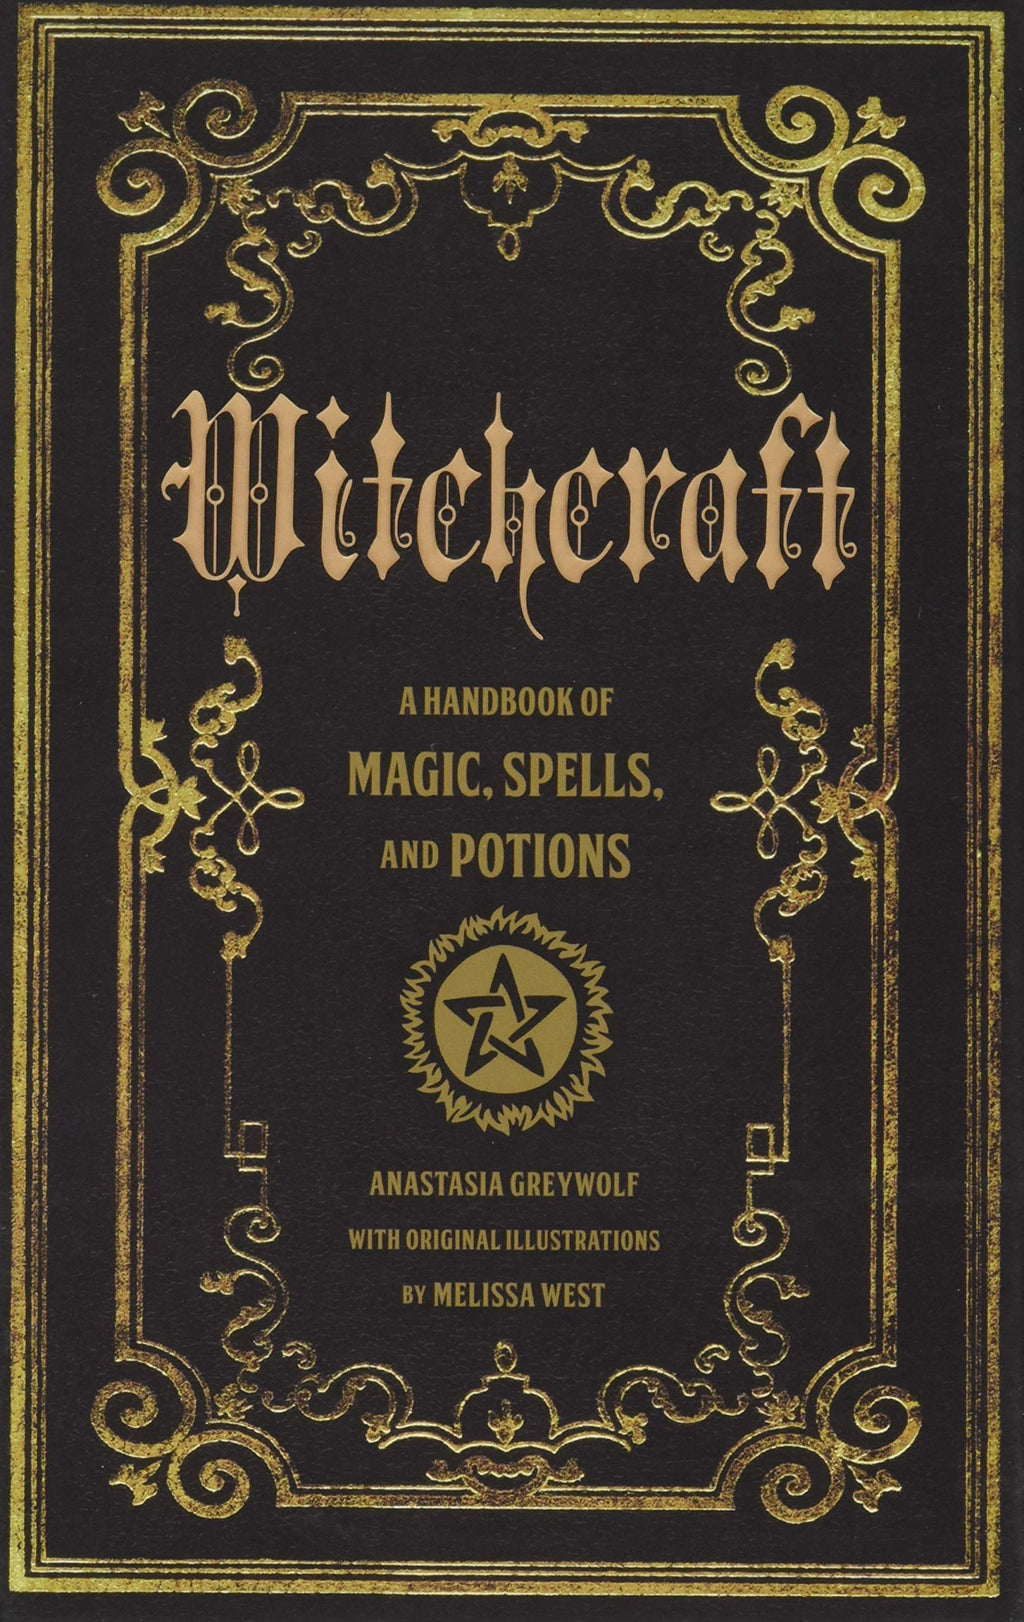 Witchcraft by Anastasia Greywolf